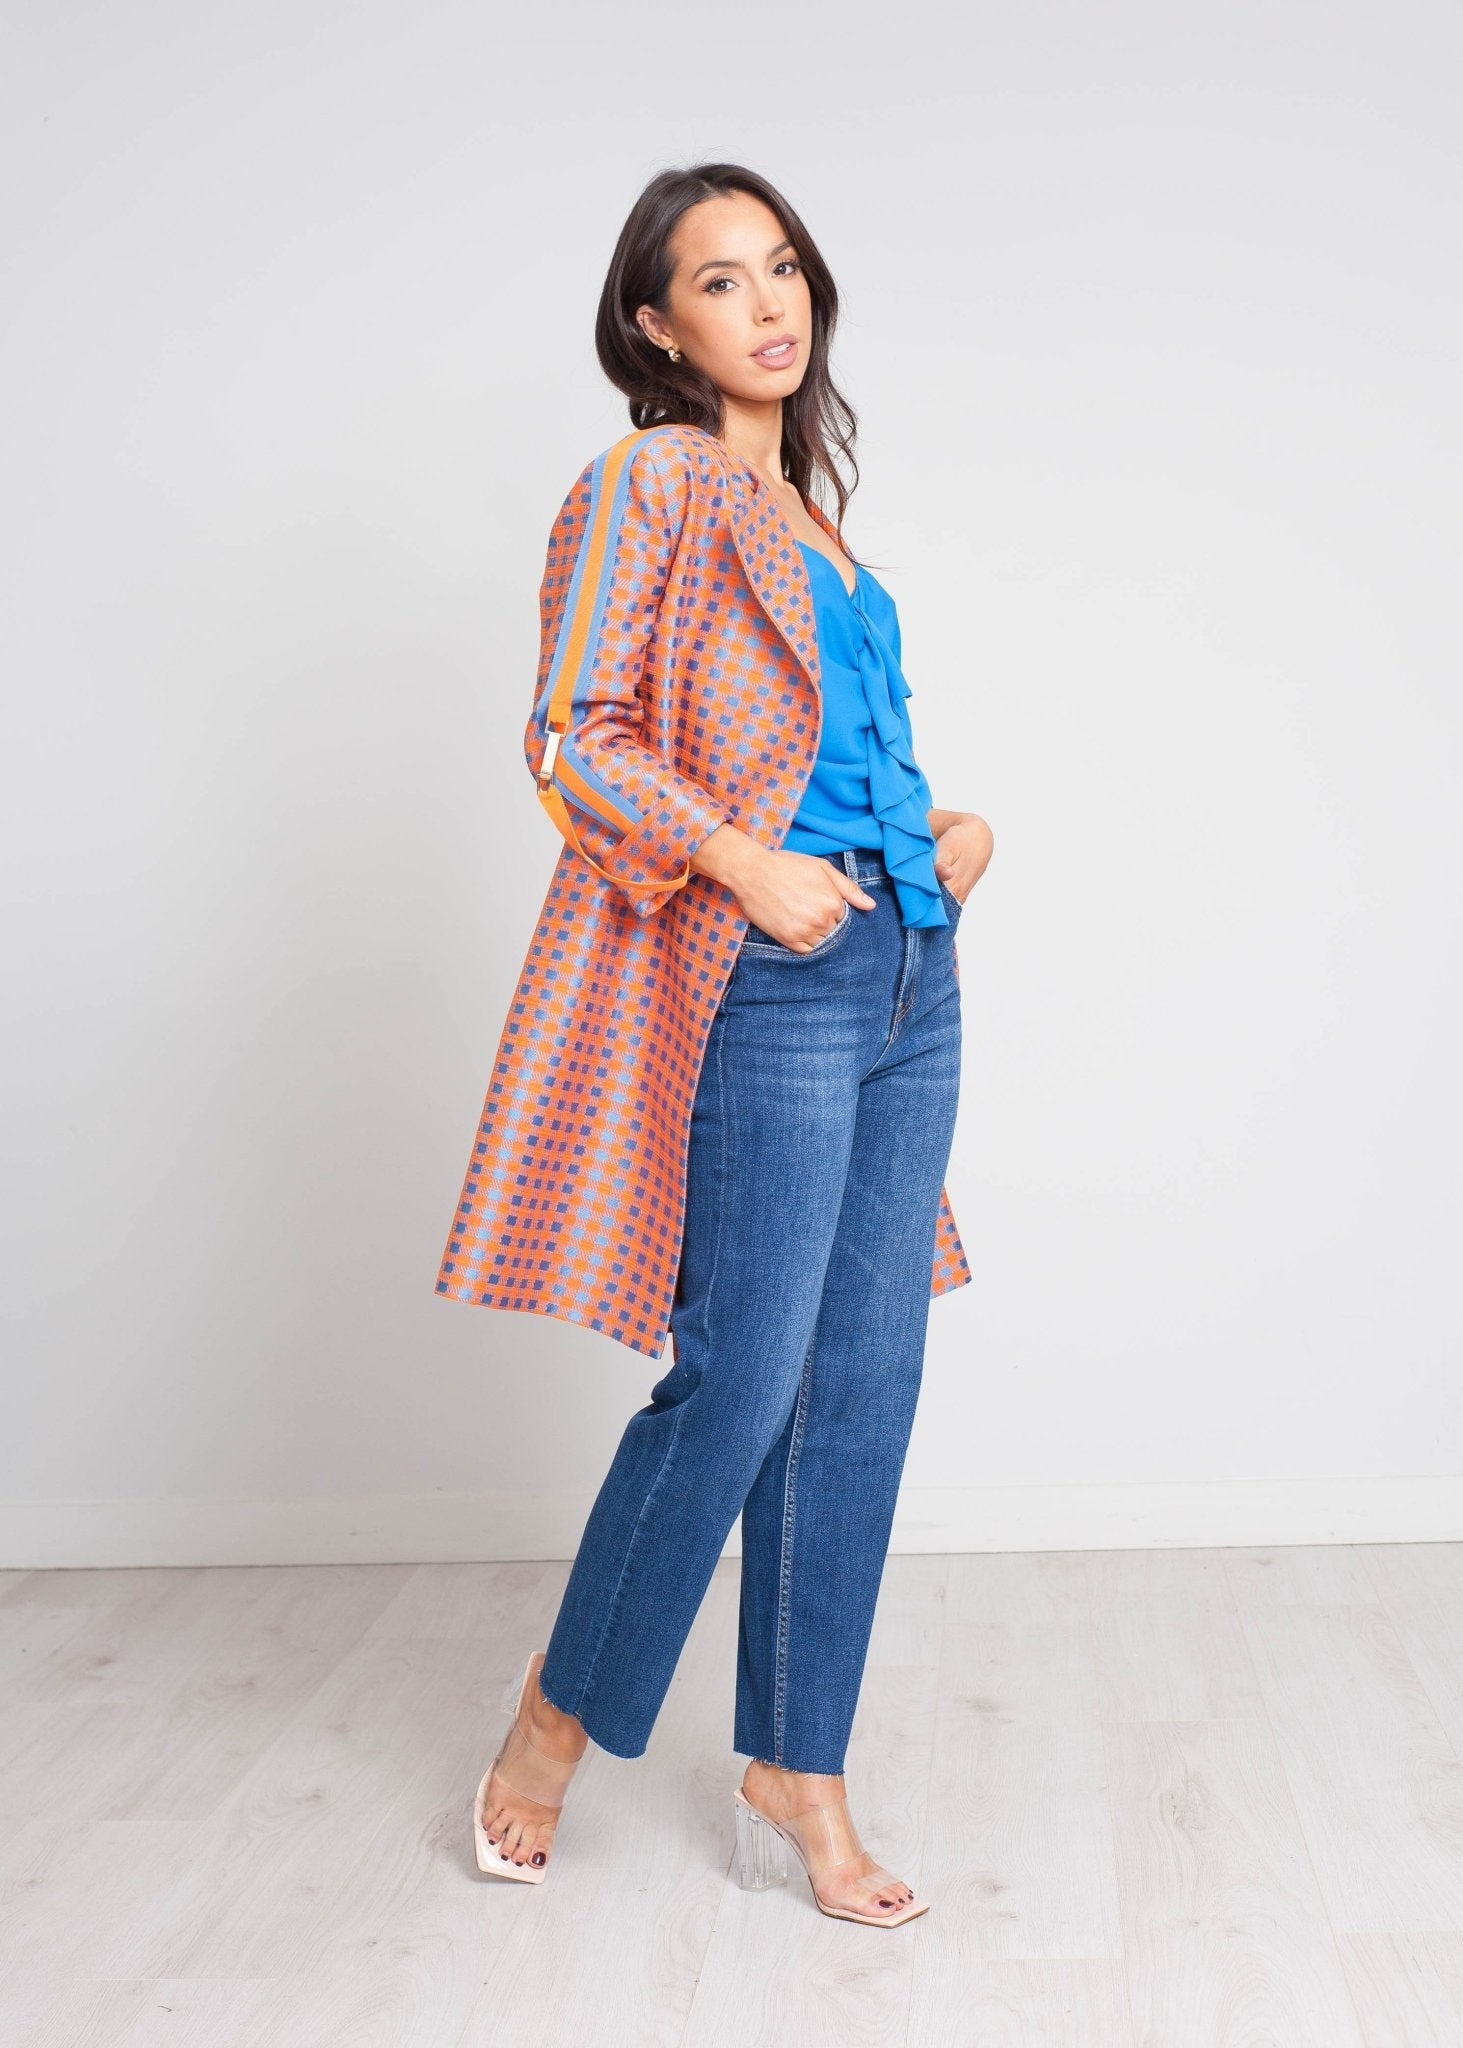 Eva Check Jacket In Blue & Orange - The Walk in Wardrobe